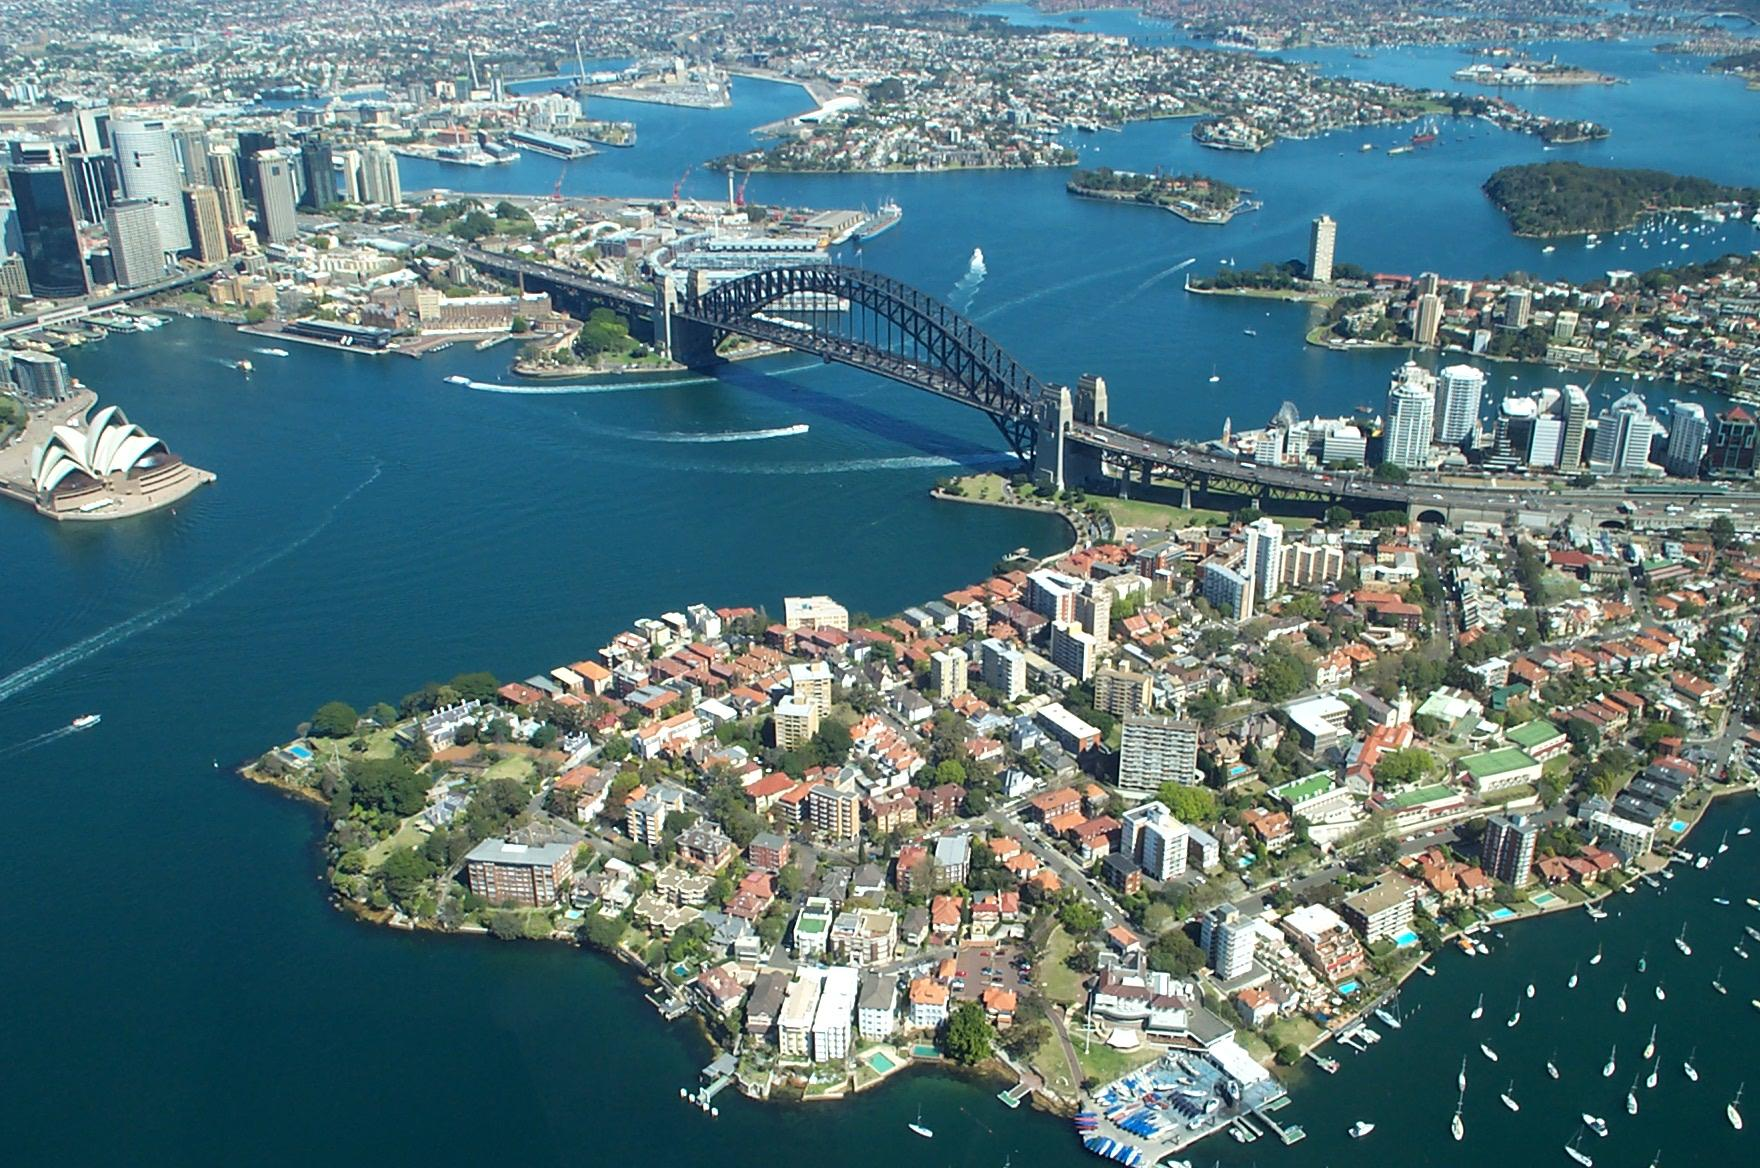 Sydney_Harbour_Bridge_from_the_air